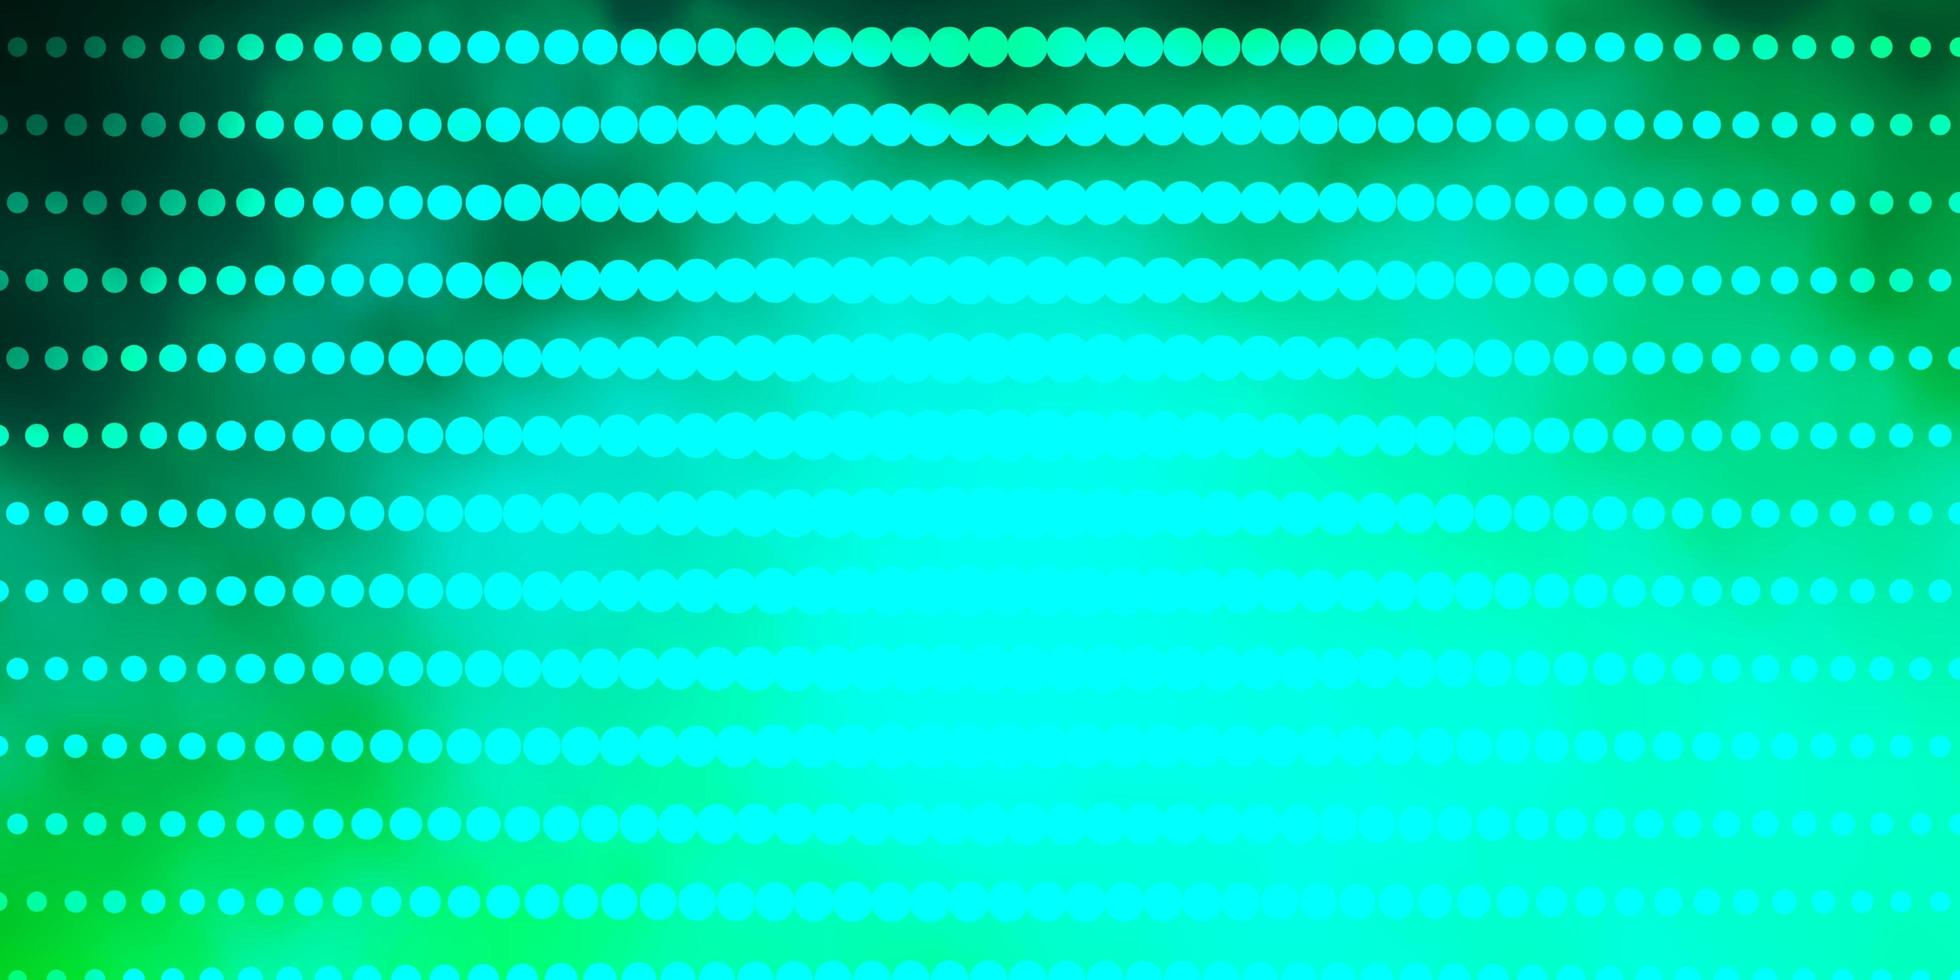 Light Green vector texture with circles.